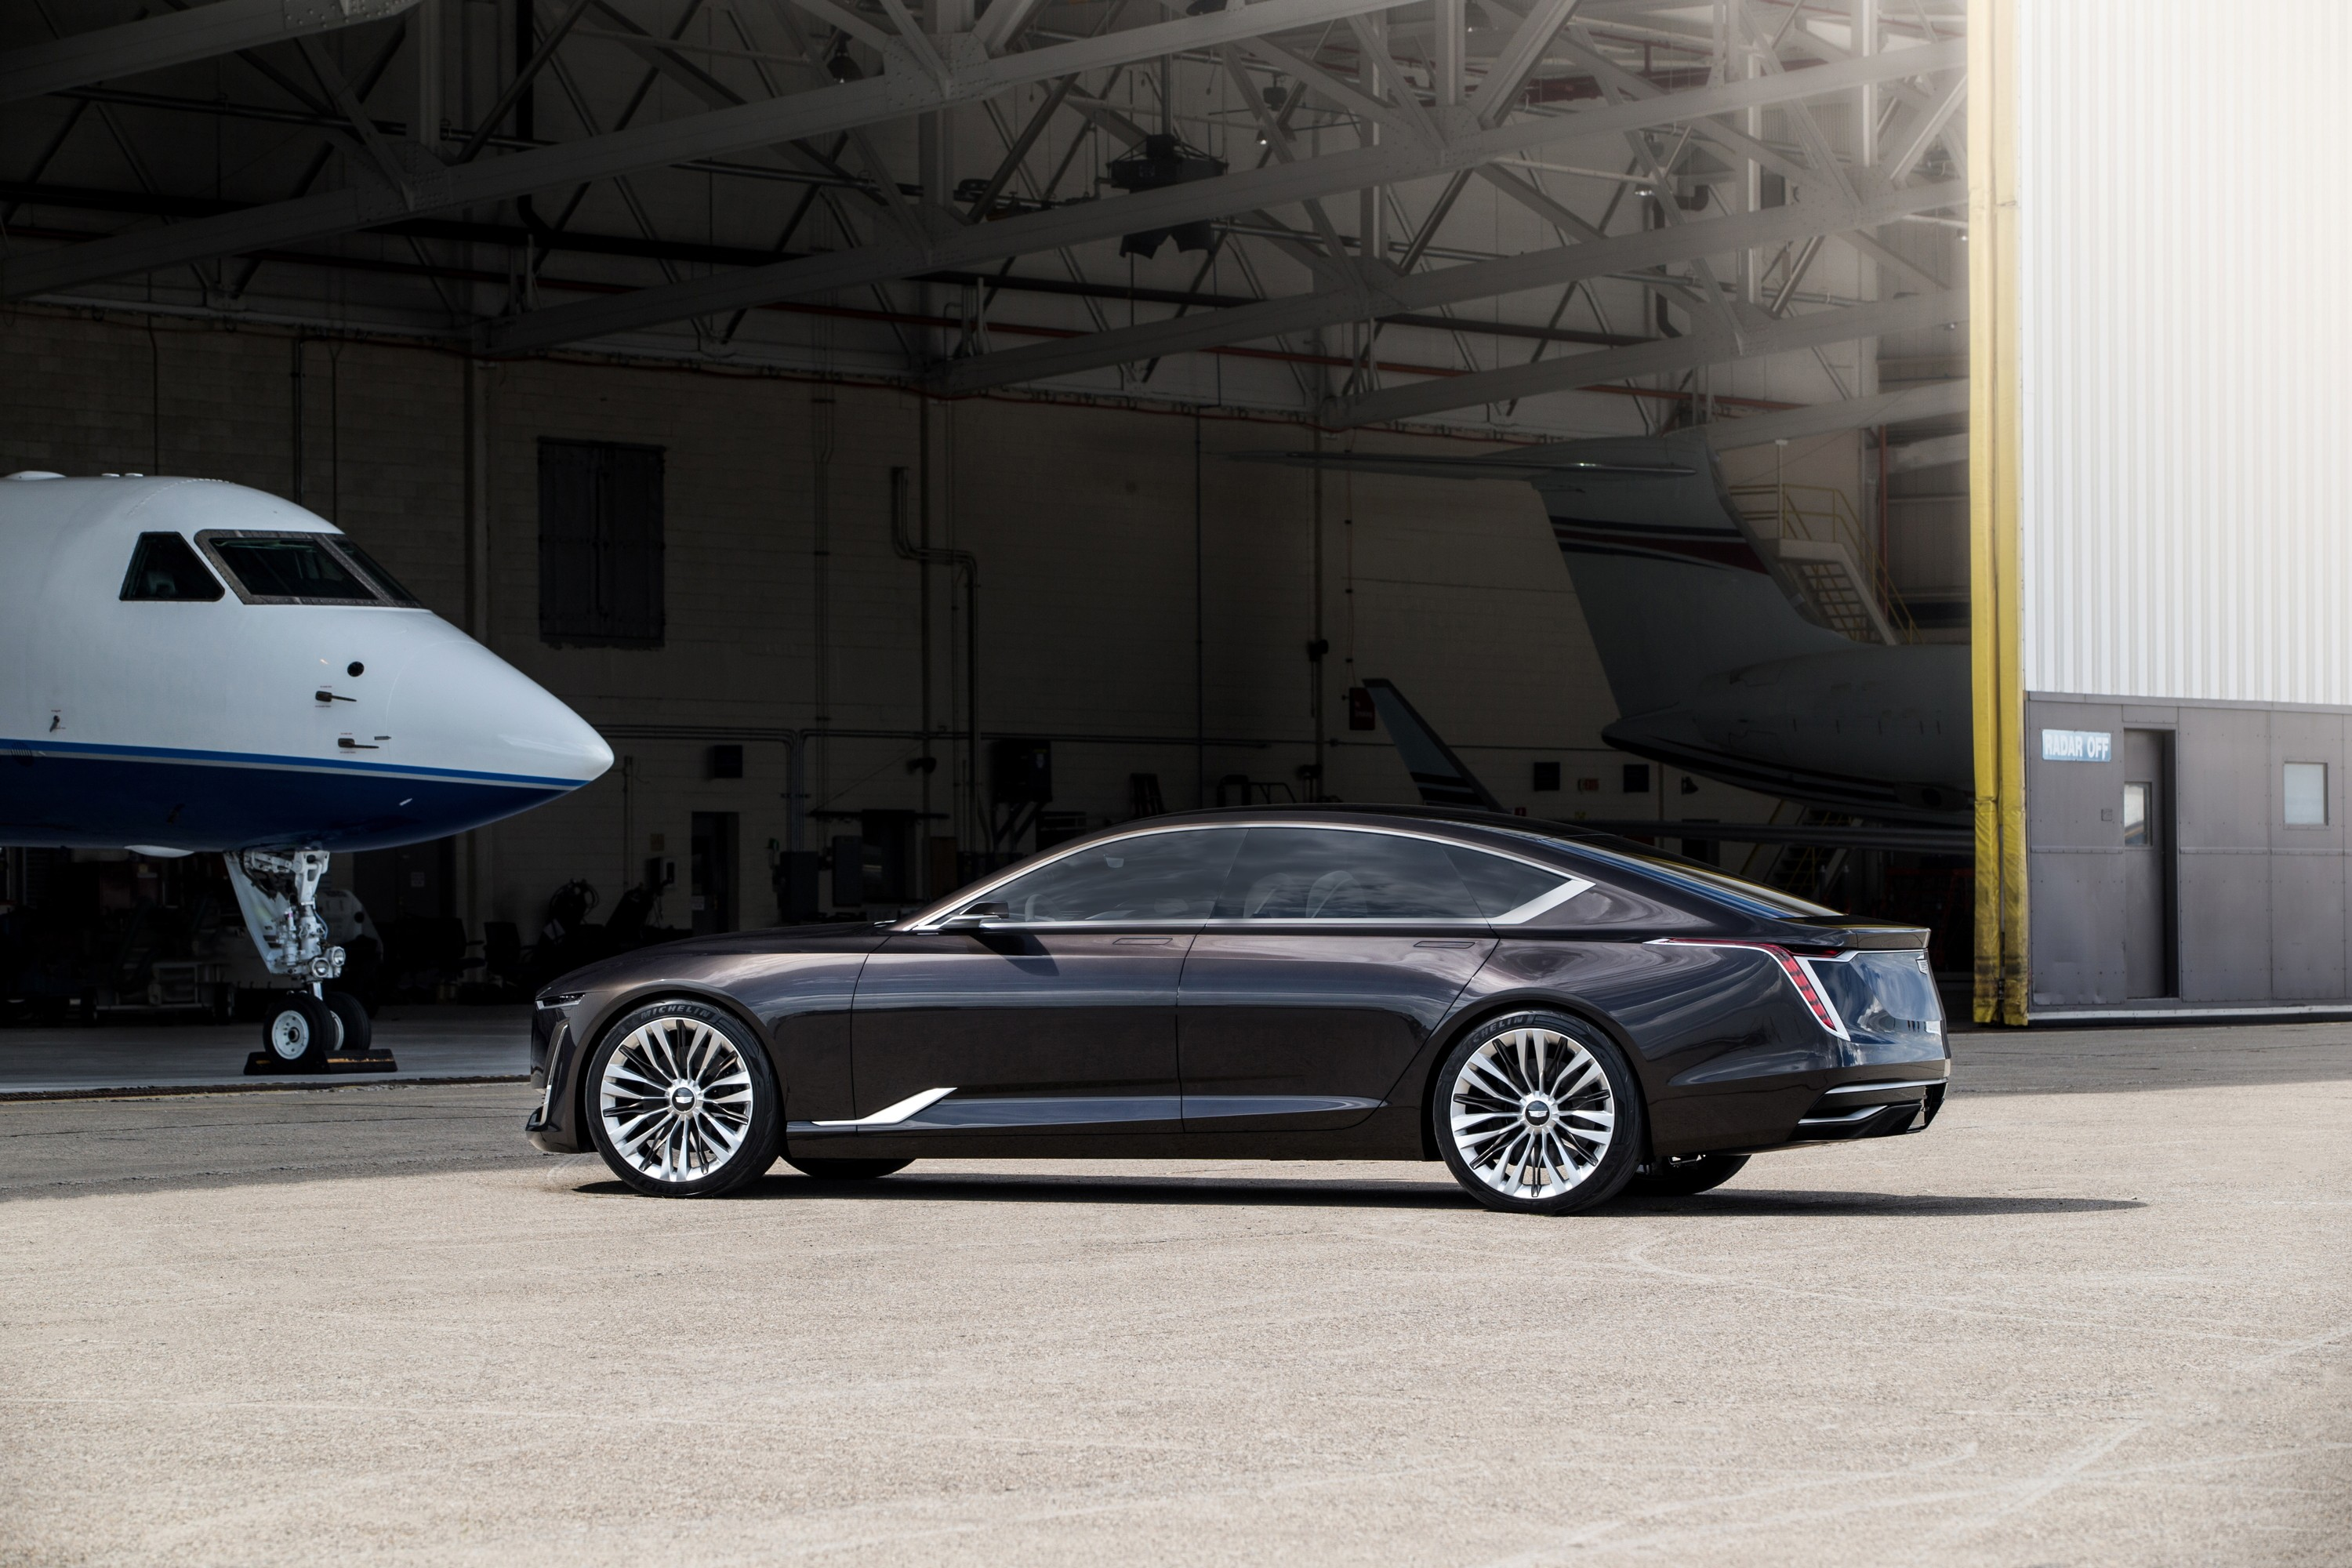 Cadillac Elr For Sale >> Cadillac Escala Concept Debuts 4.2-Liter Twin-Turbo V8 ...